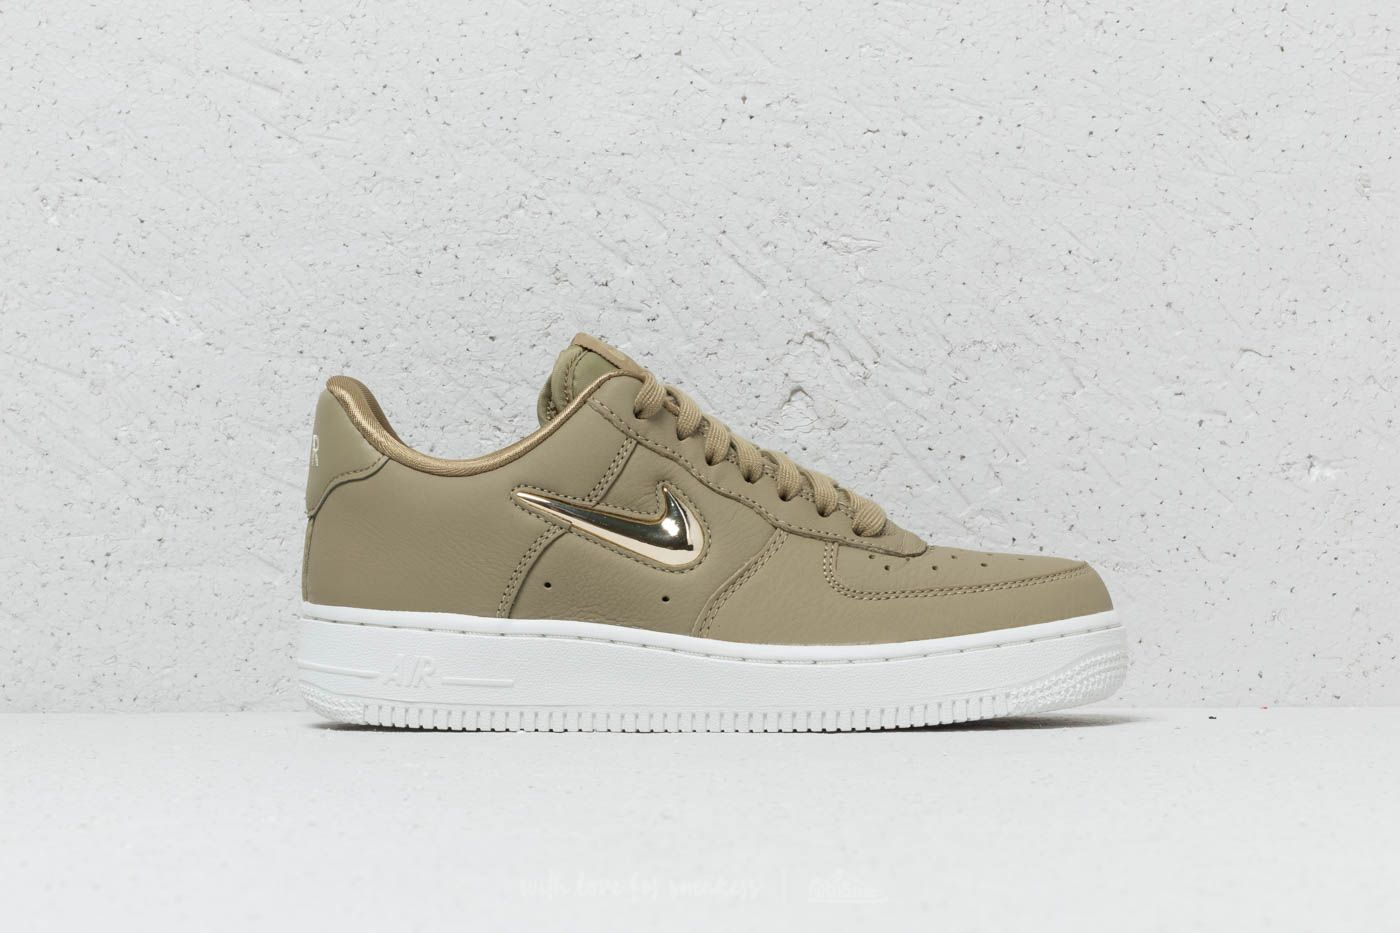 reputable site 7613a 24bbf Nike Wmns Air Force 1  07 Premium LX Neutral Olive  Metallic Gold Star at